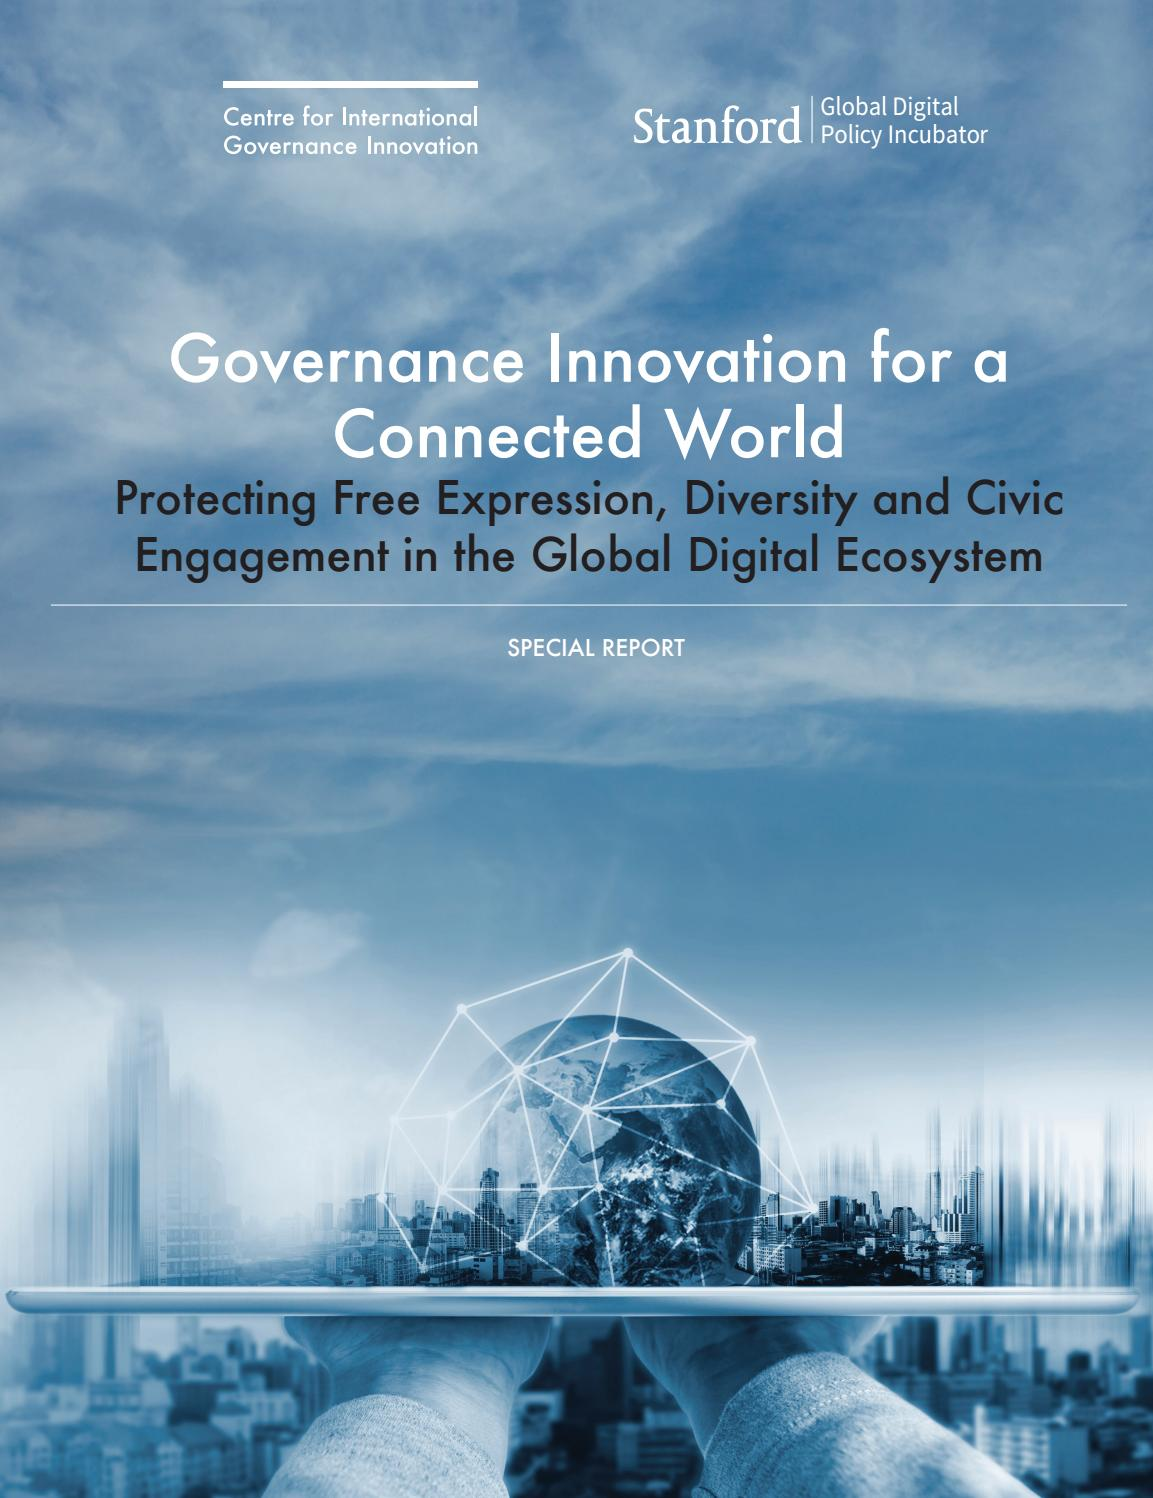 Governance Innovation for a Connected World by Centre for